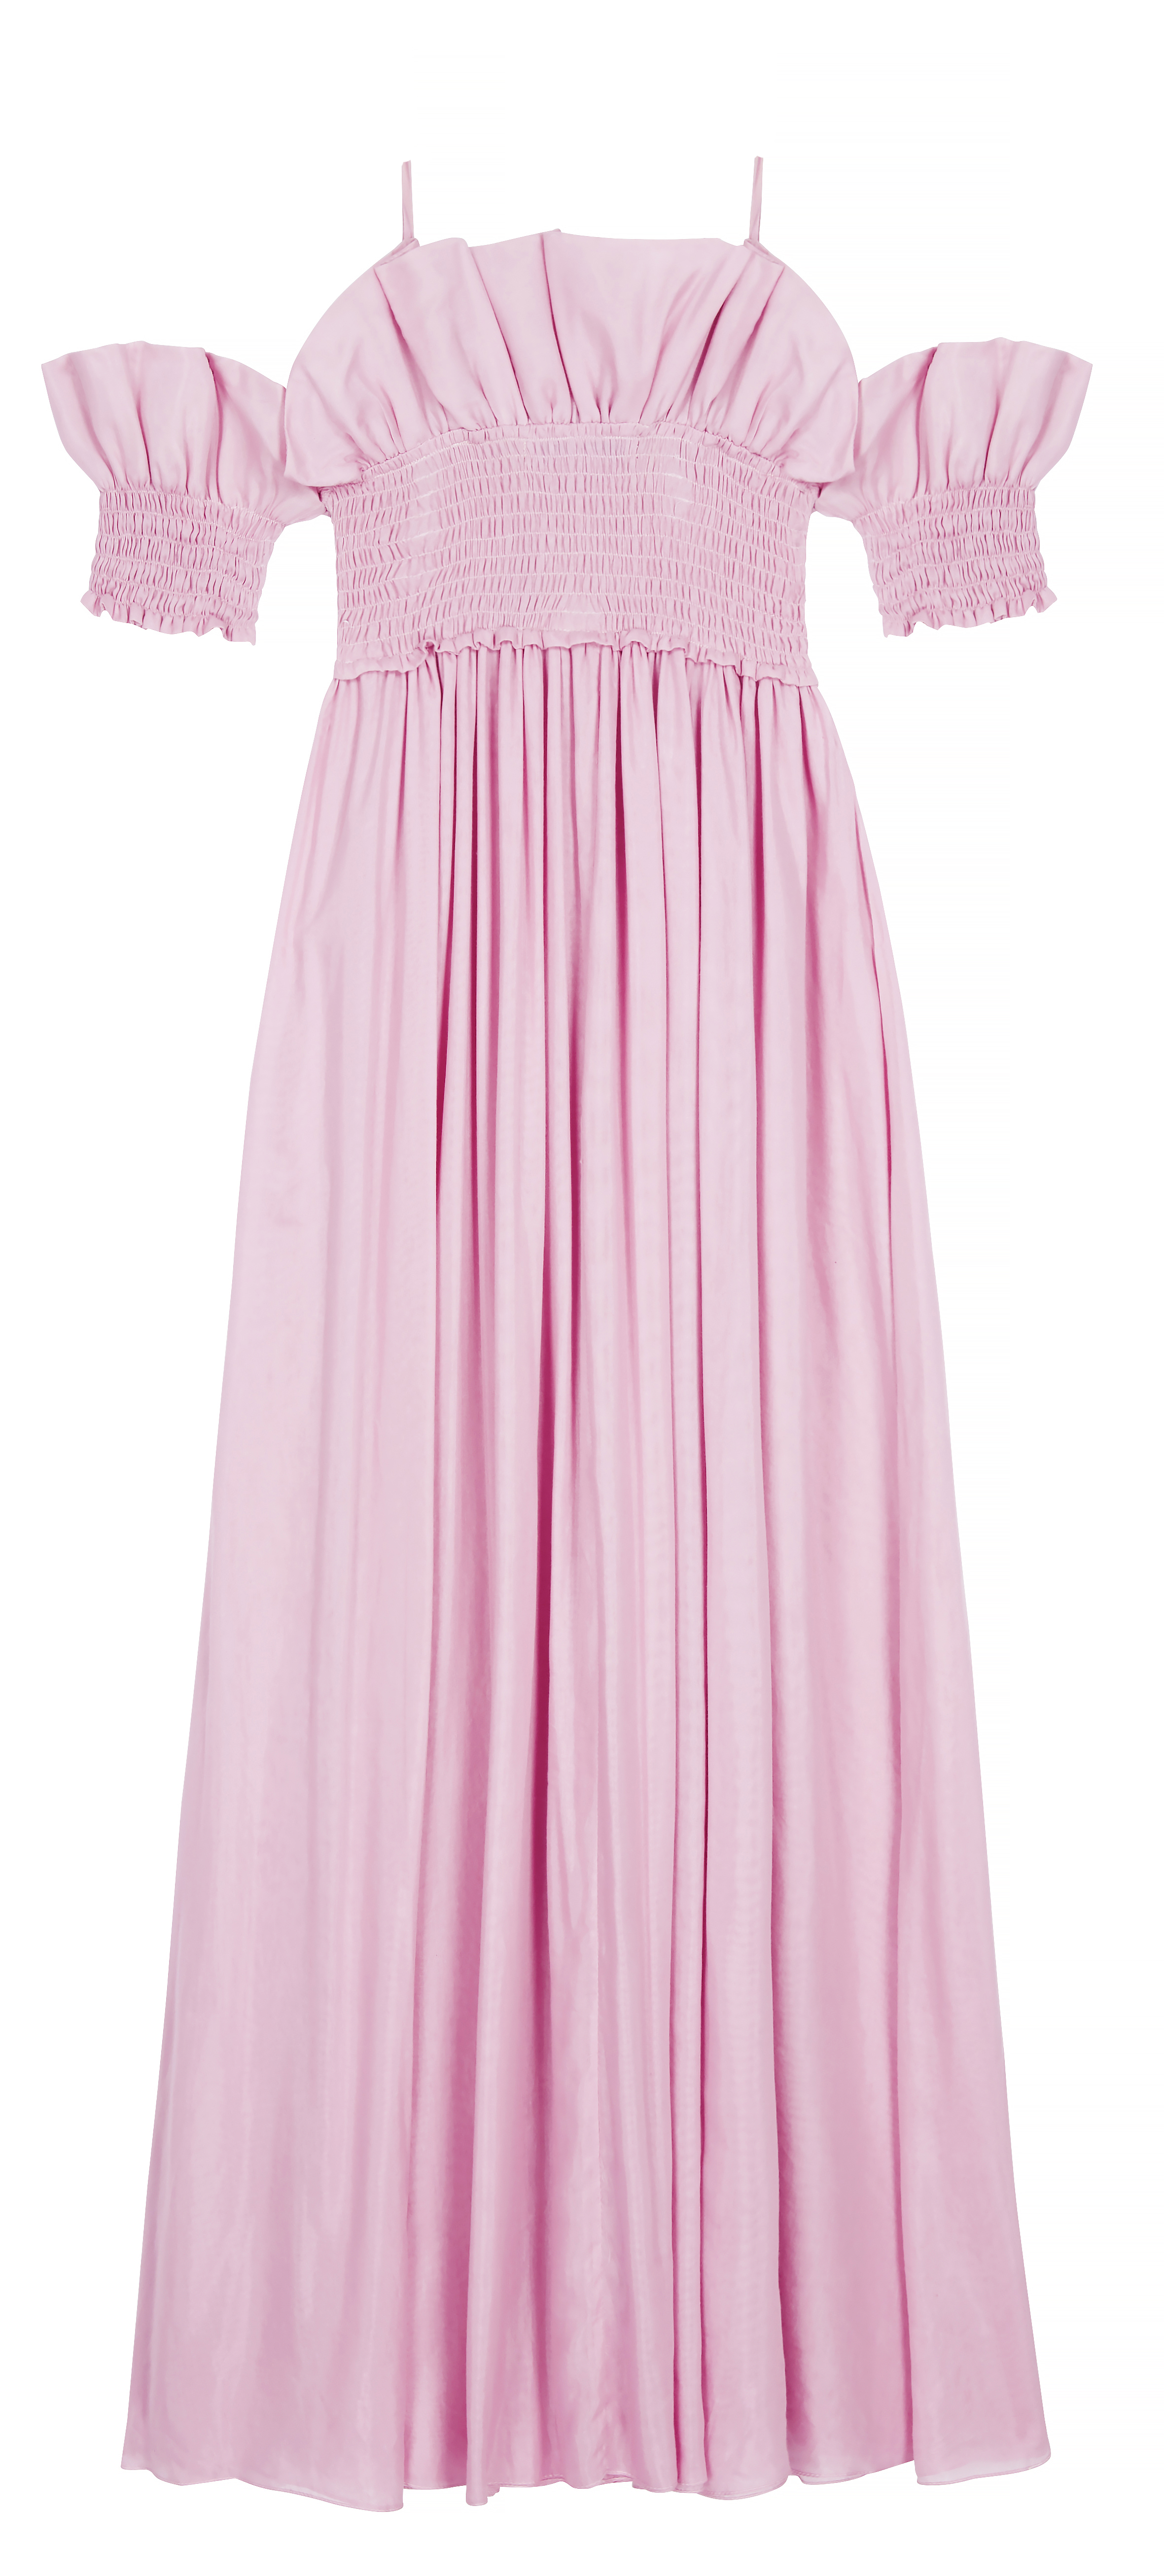 Siesta Dress  - Pink by Berta Cabestany on curated-crowd.com